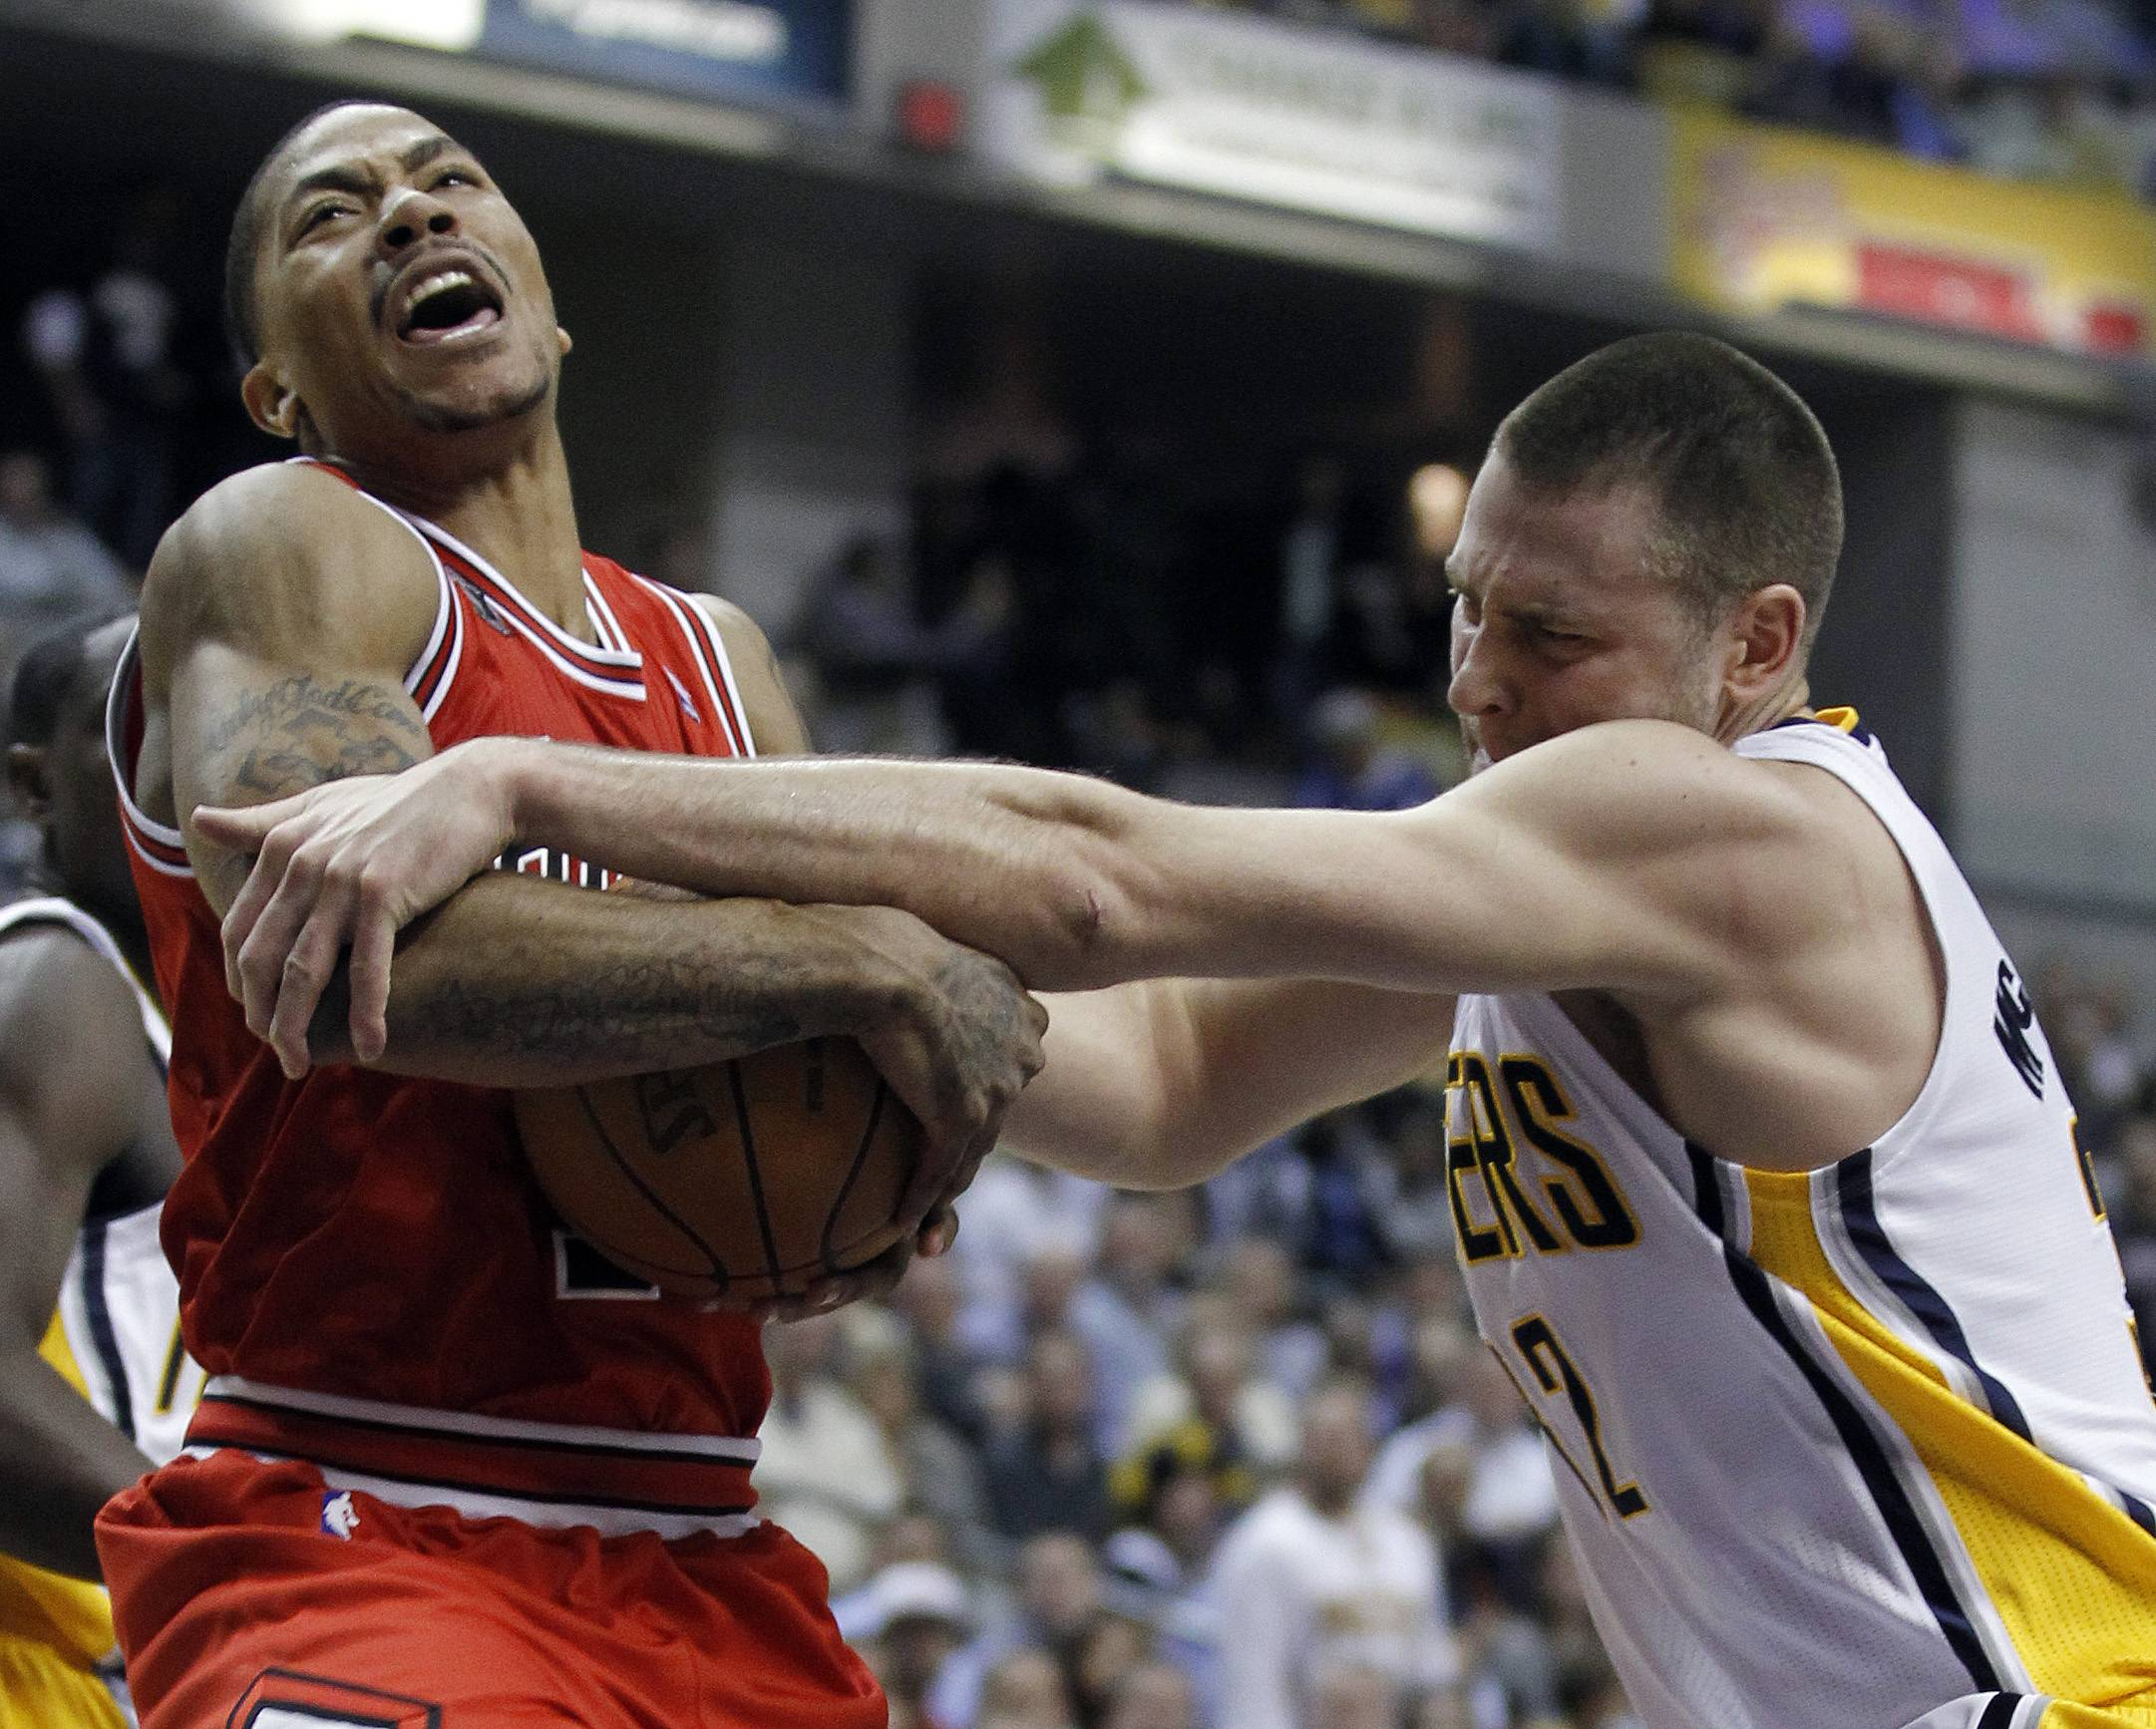 Derrick Rose is fouled by Indiana Pacers' Josh McRoberts (32) during the first half of Game 3 of a first-round NBA basketball series in Indianapolis, Thursday, April 21, 2011.